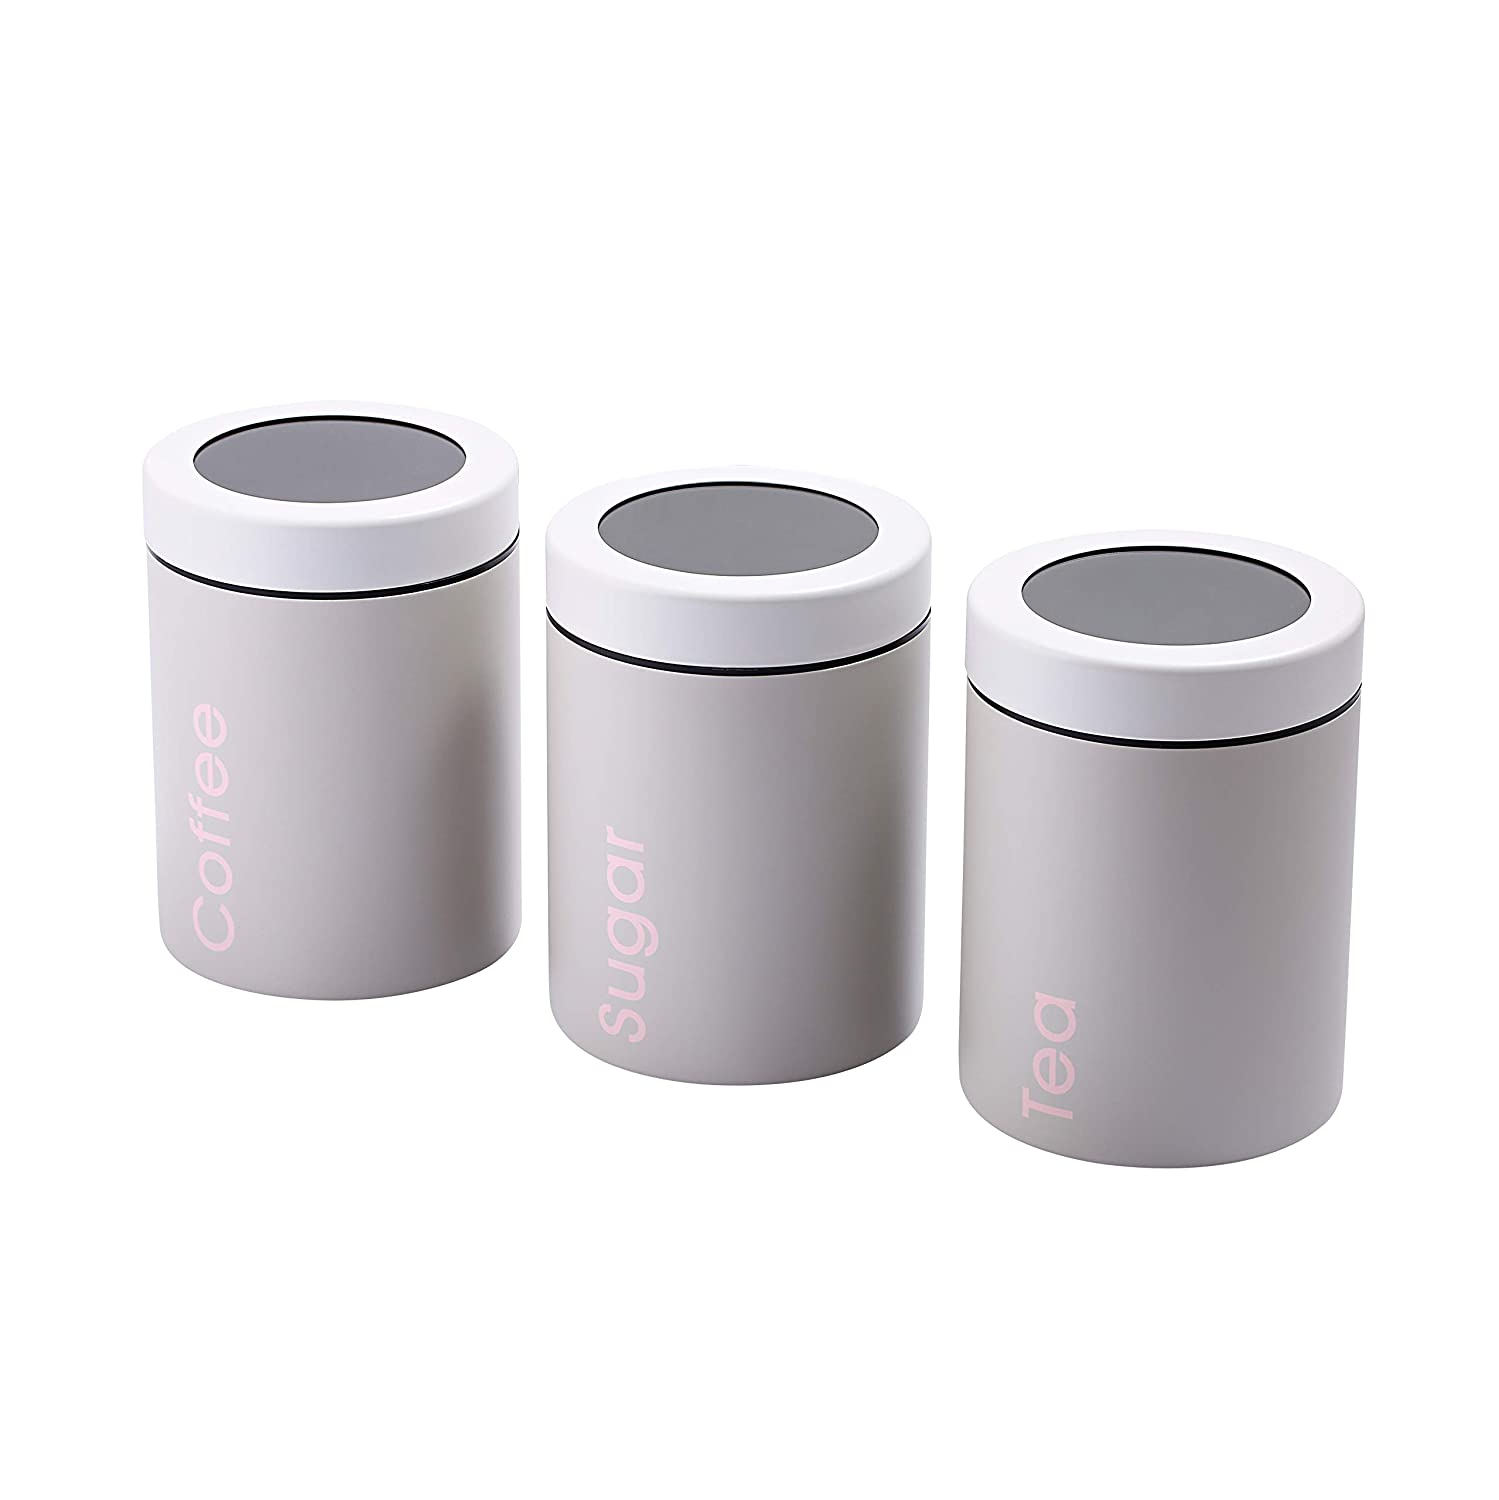 0057672a6c Amazon.com: Adzukio Modern Stylish Canisters Sets for Kitchen Counter,  3-piece canister for Tea Sugar Coffee Food Storage Container Multipurpose  (Light ...